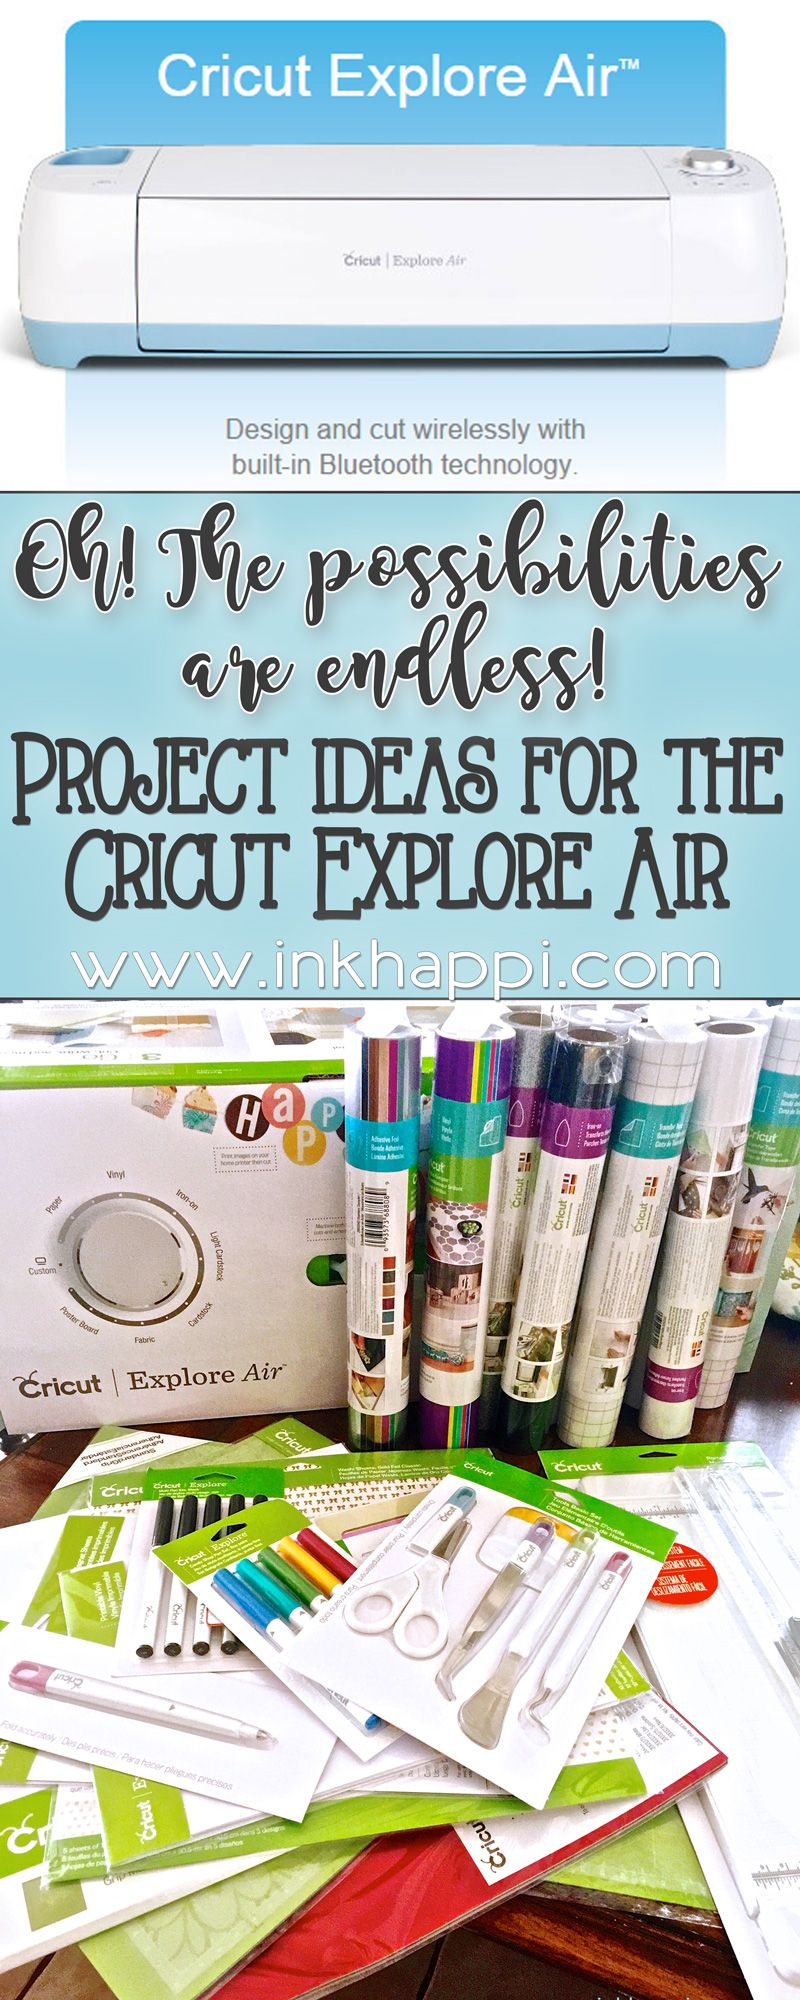 Cricut Explore Project Ideas... Oh, The possibilities